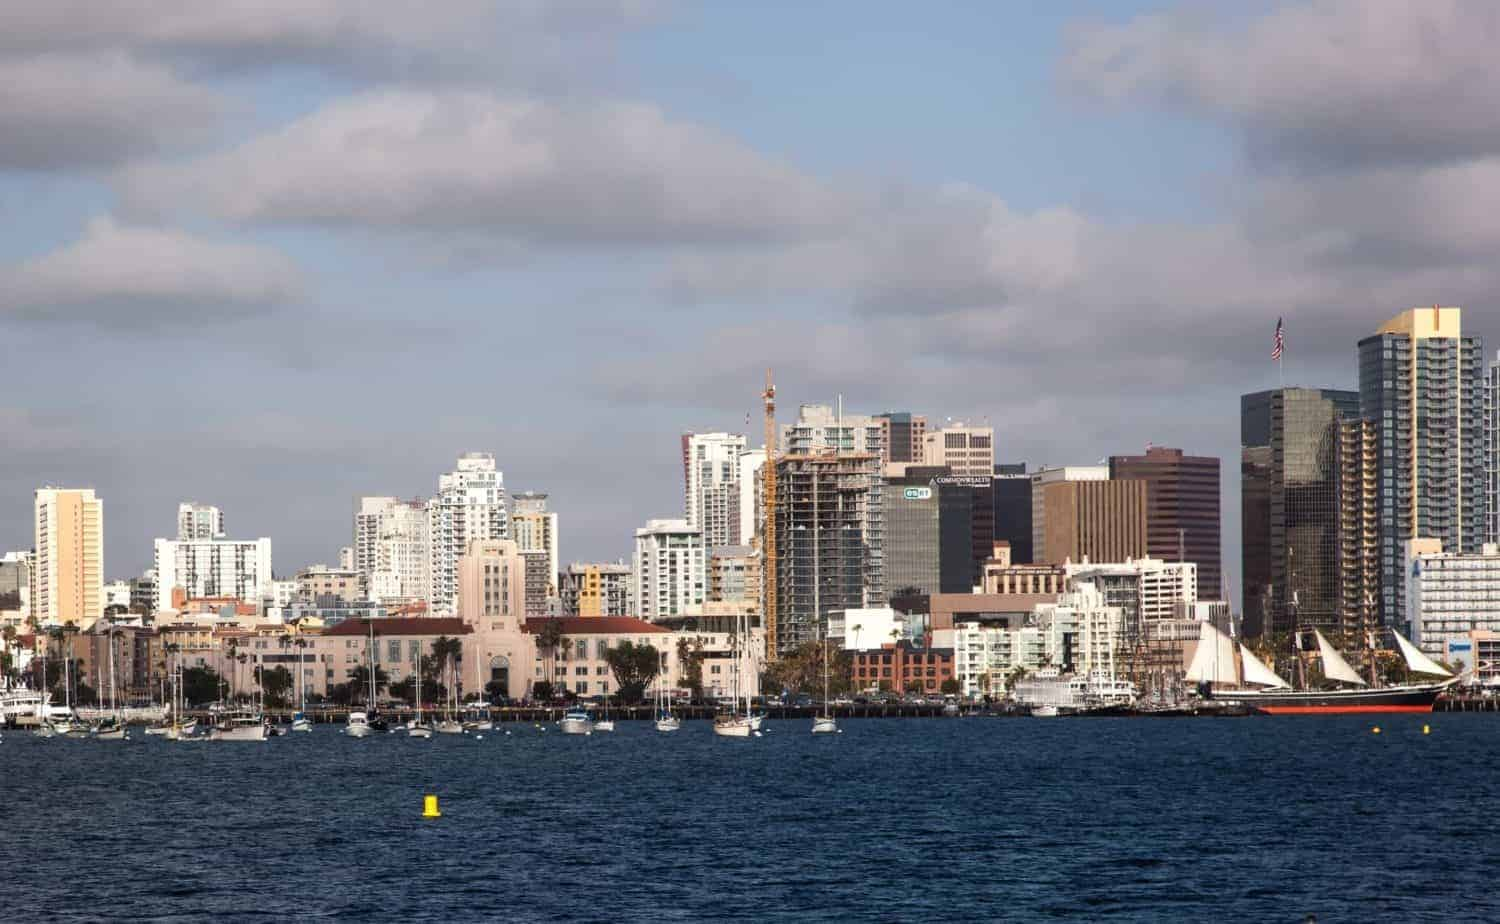 San Diego. Looking across the harbor to the beautiful San Diego skyline